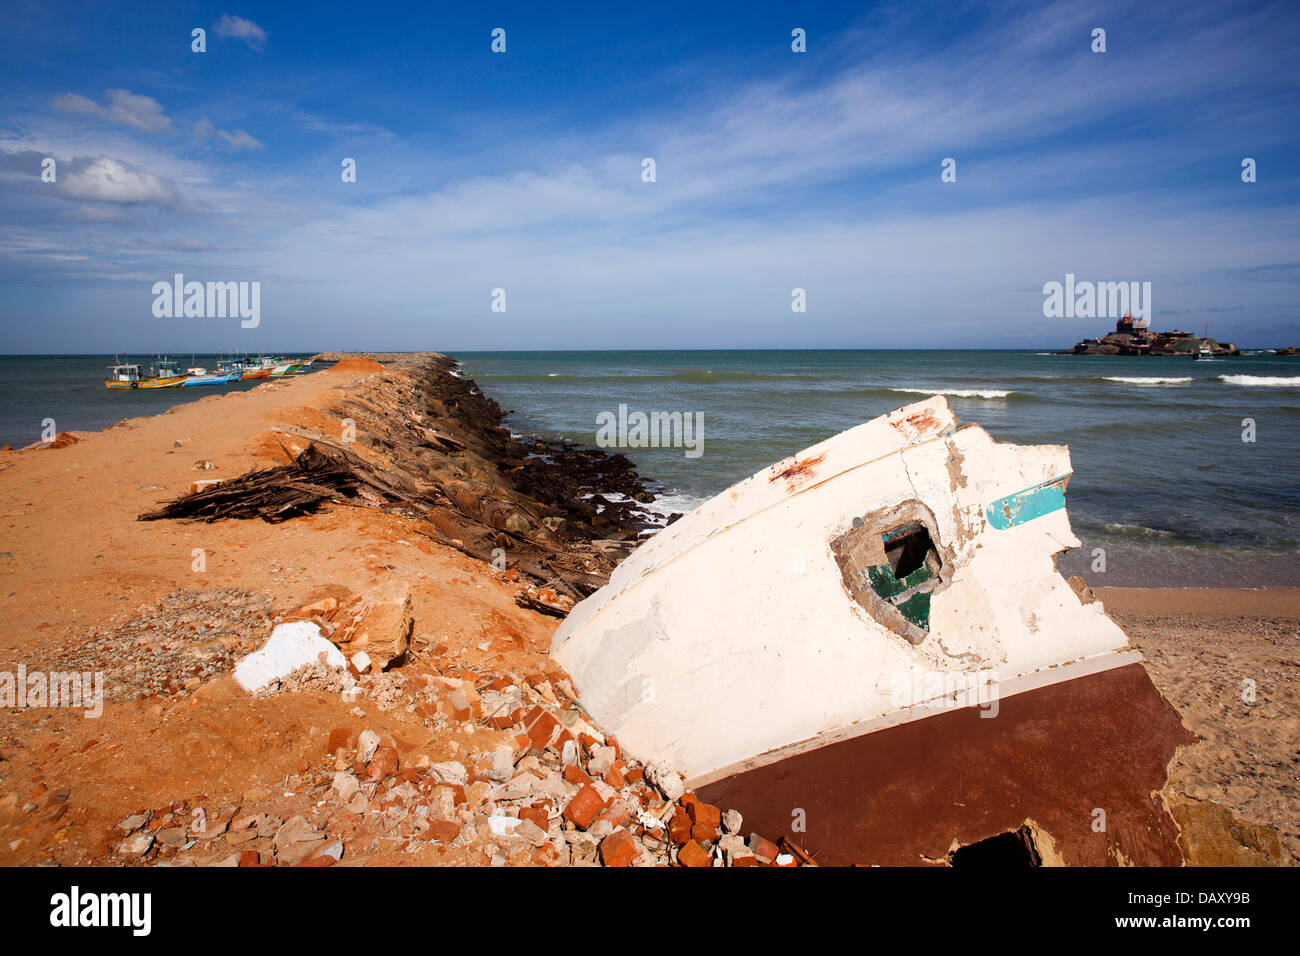 Rubbles of destroyed house on the beach, Kanyakumari, Tamil Nadu, India - Stock Image